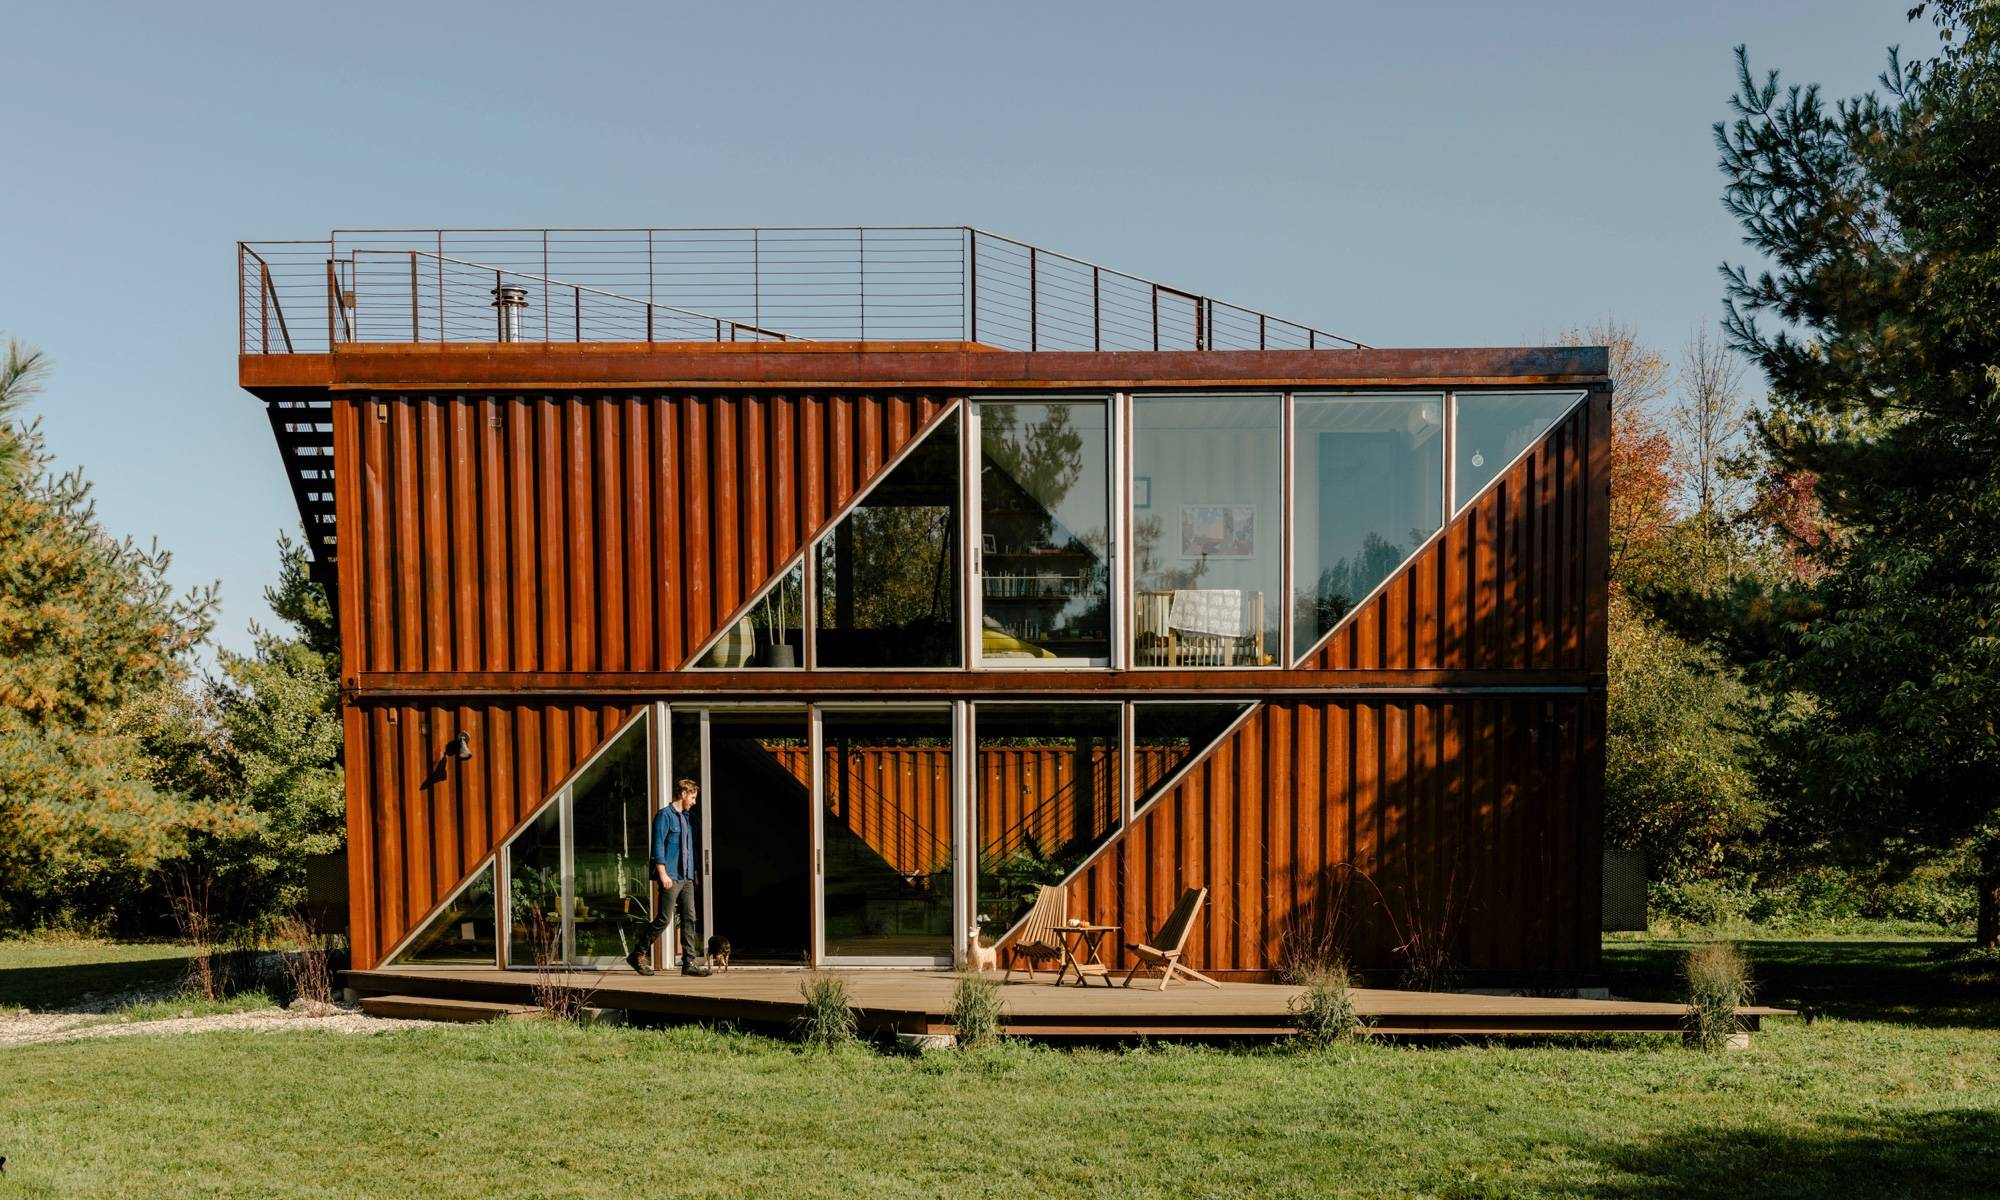 Container home in hudson, ny.